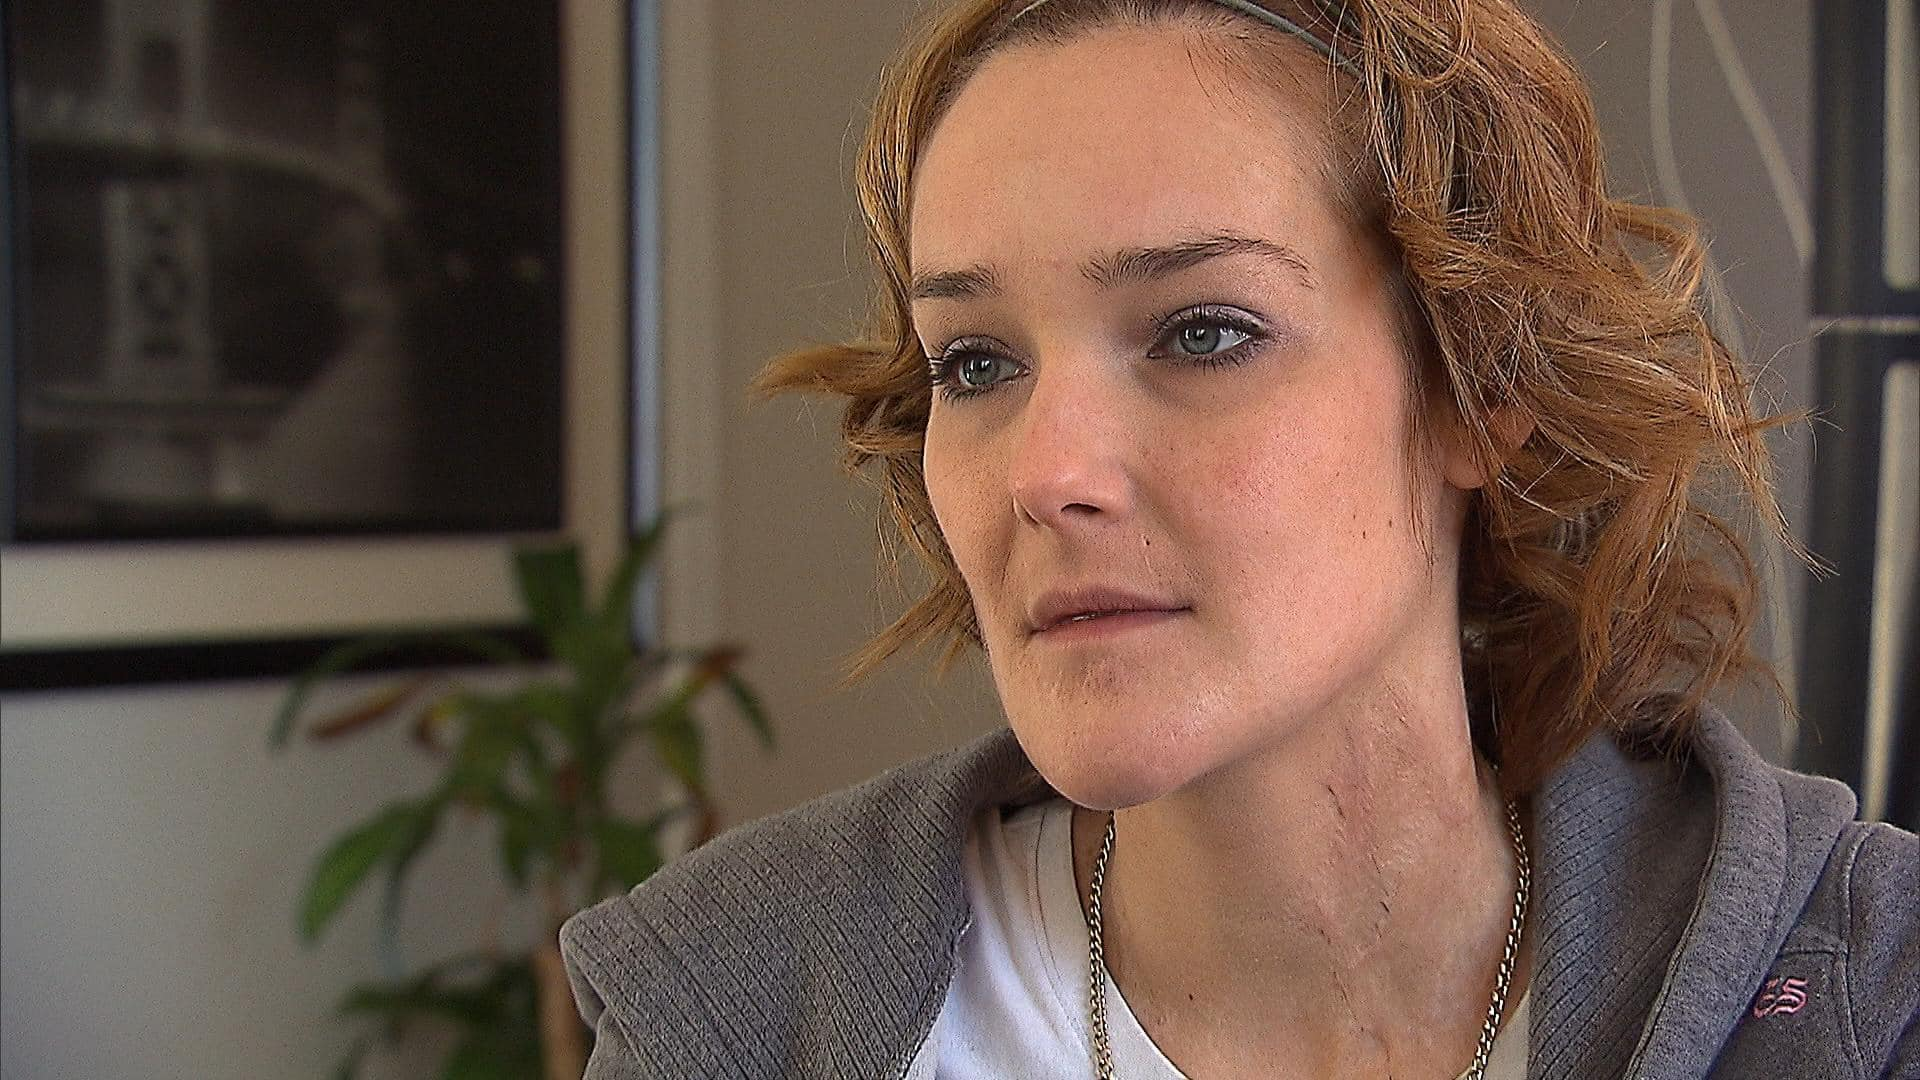 RAW | Tanya St Arnauld heals her physical and emotional scars